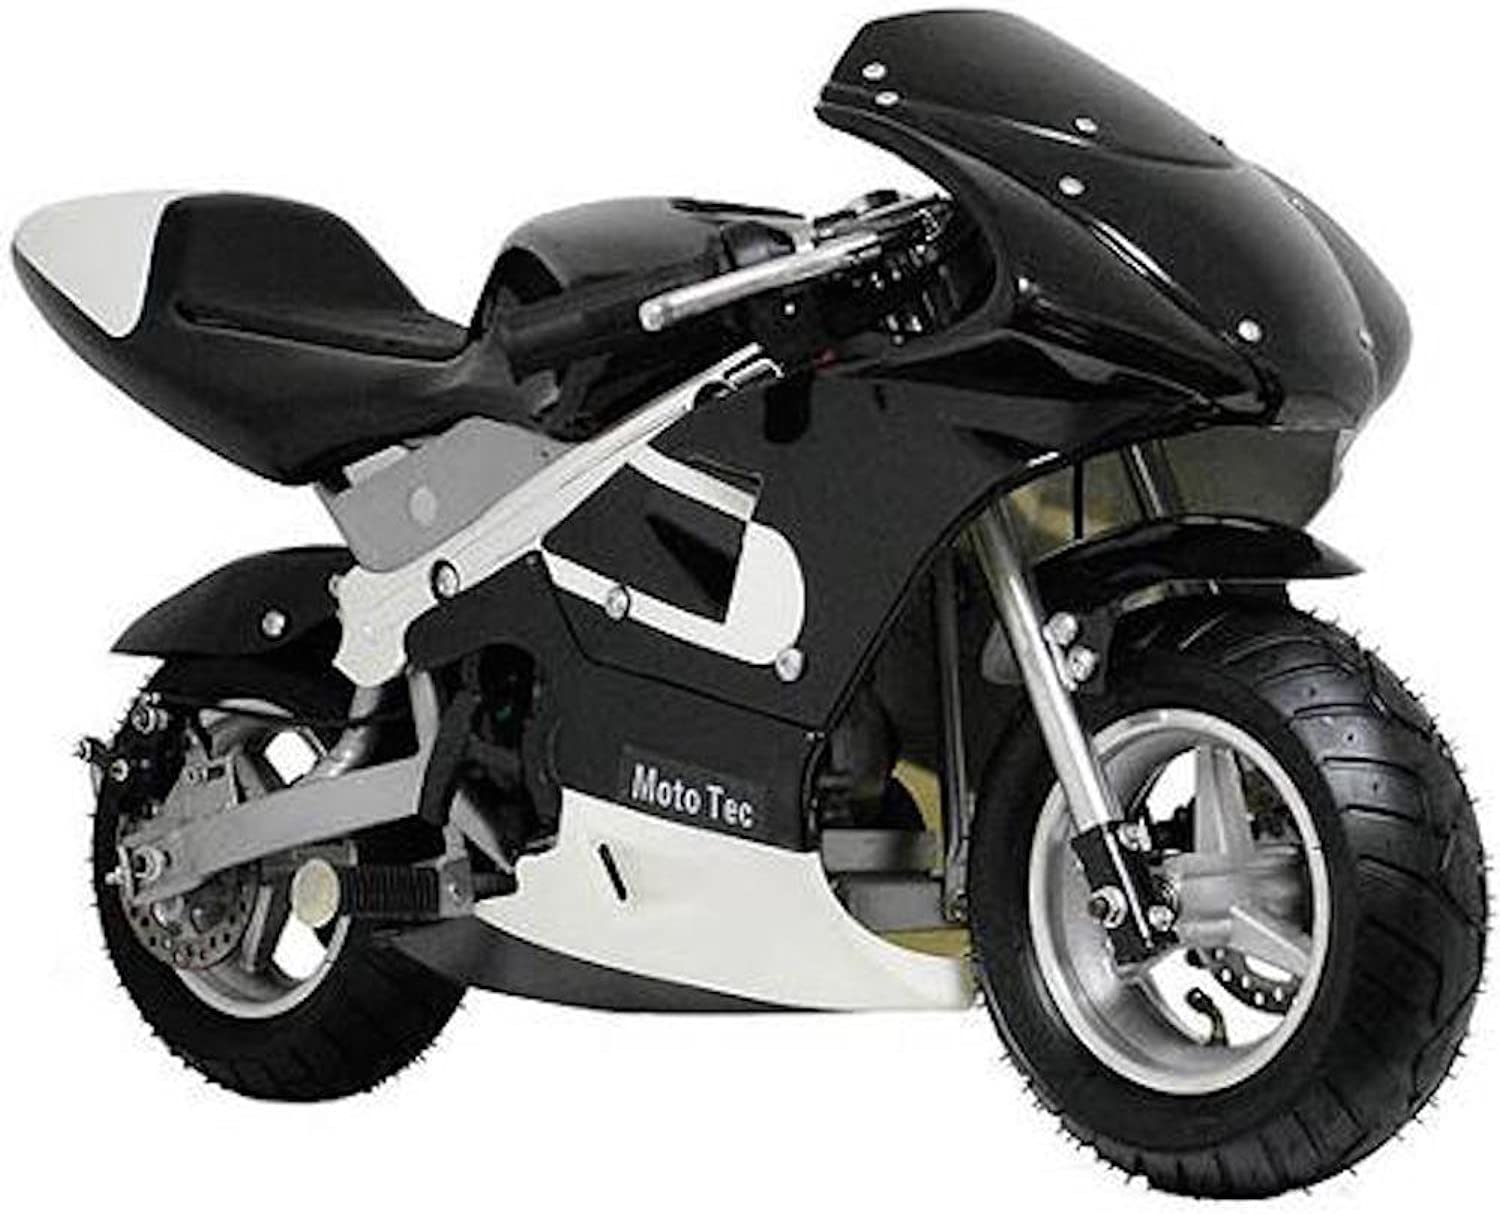 MotoTec Gas Pocket Bike Motorcycle -schwarz - Non CA compliant by MotoTec